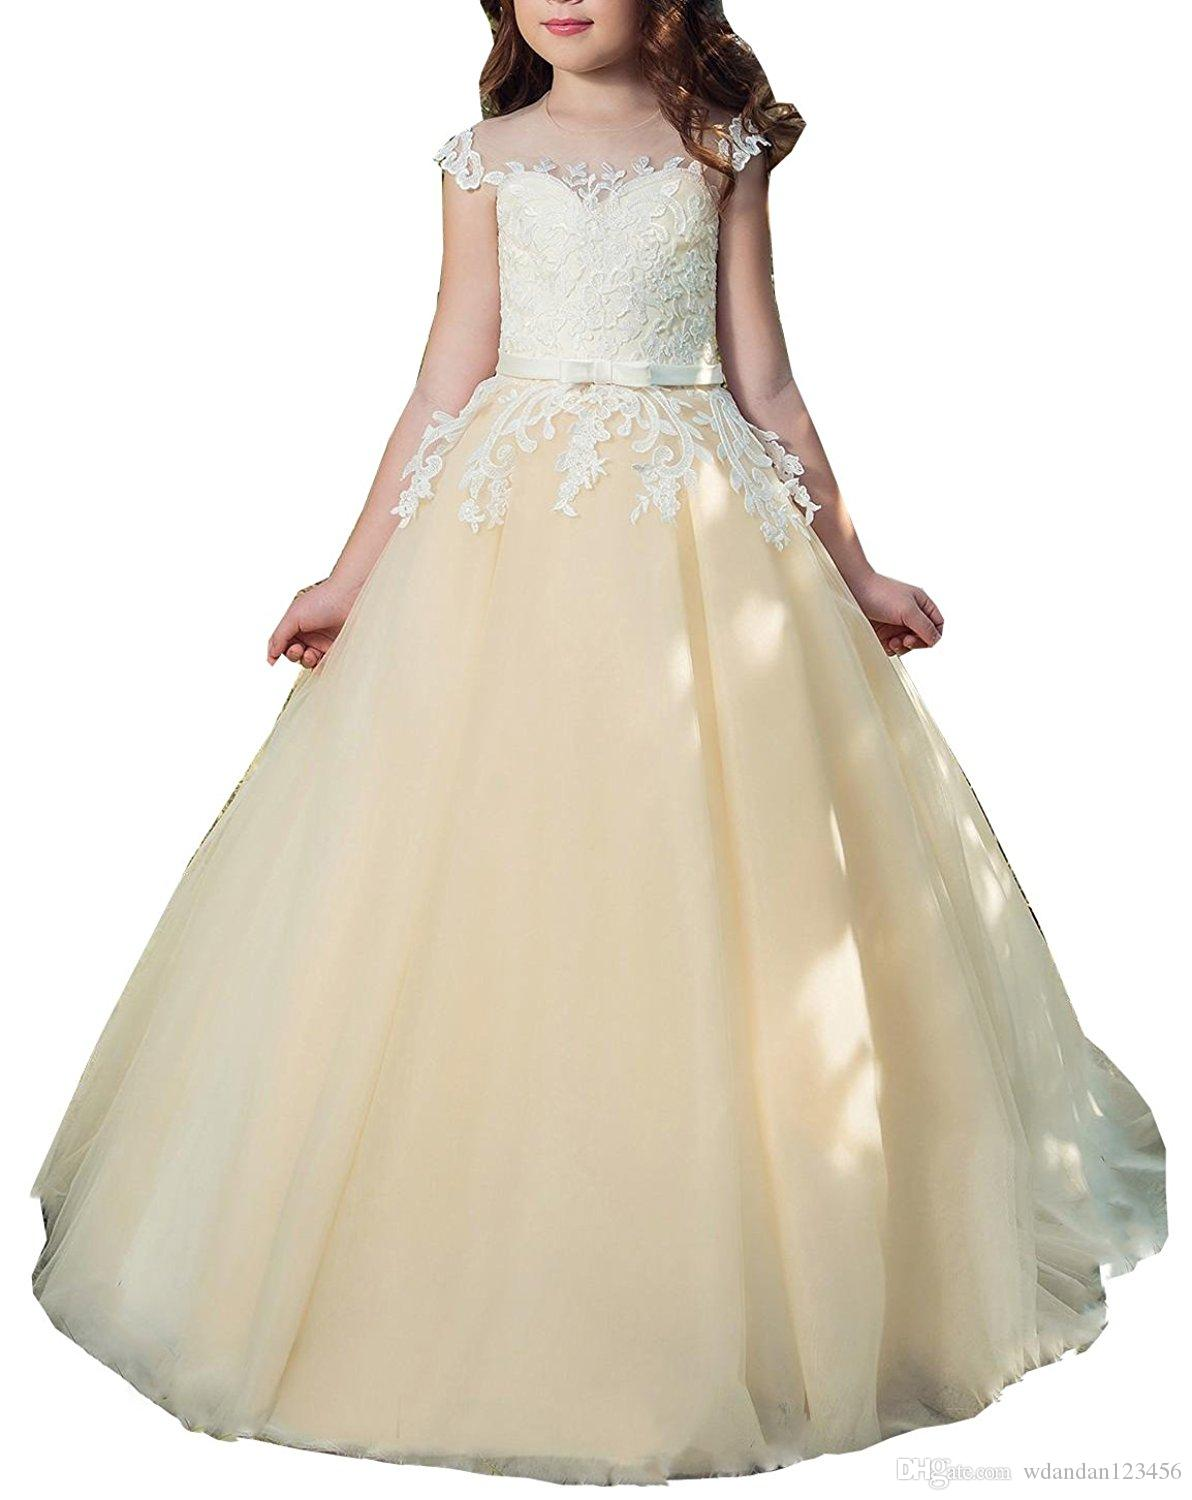 2017 Free Shipping New Flower Girl Dresses Kids First Communion Dress Ball Gown Lace Pageant Gowns 072